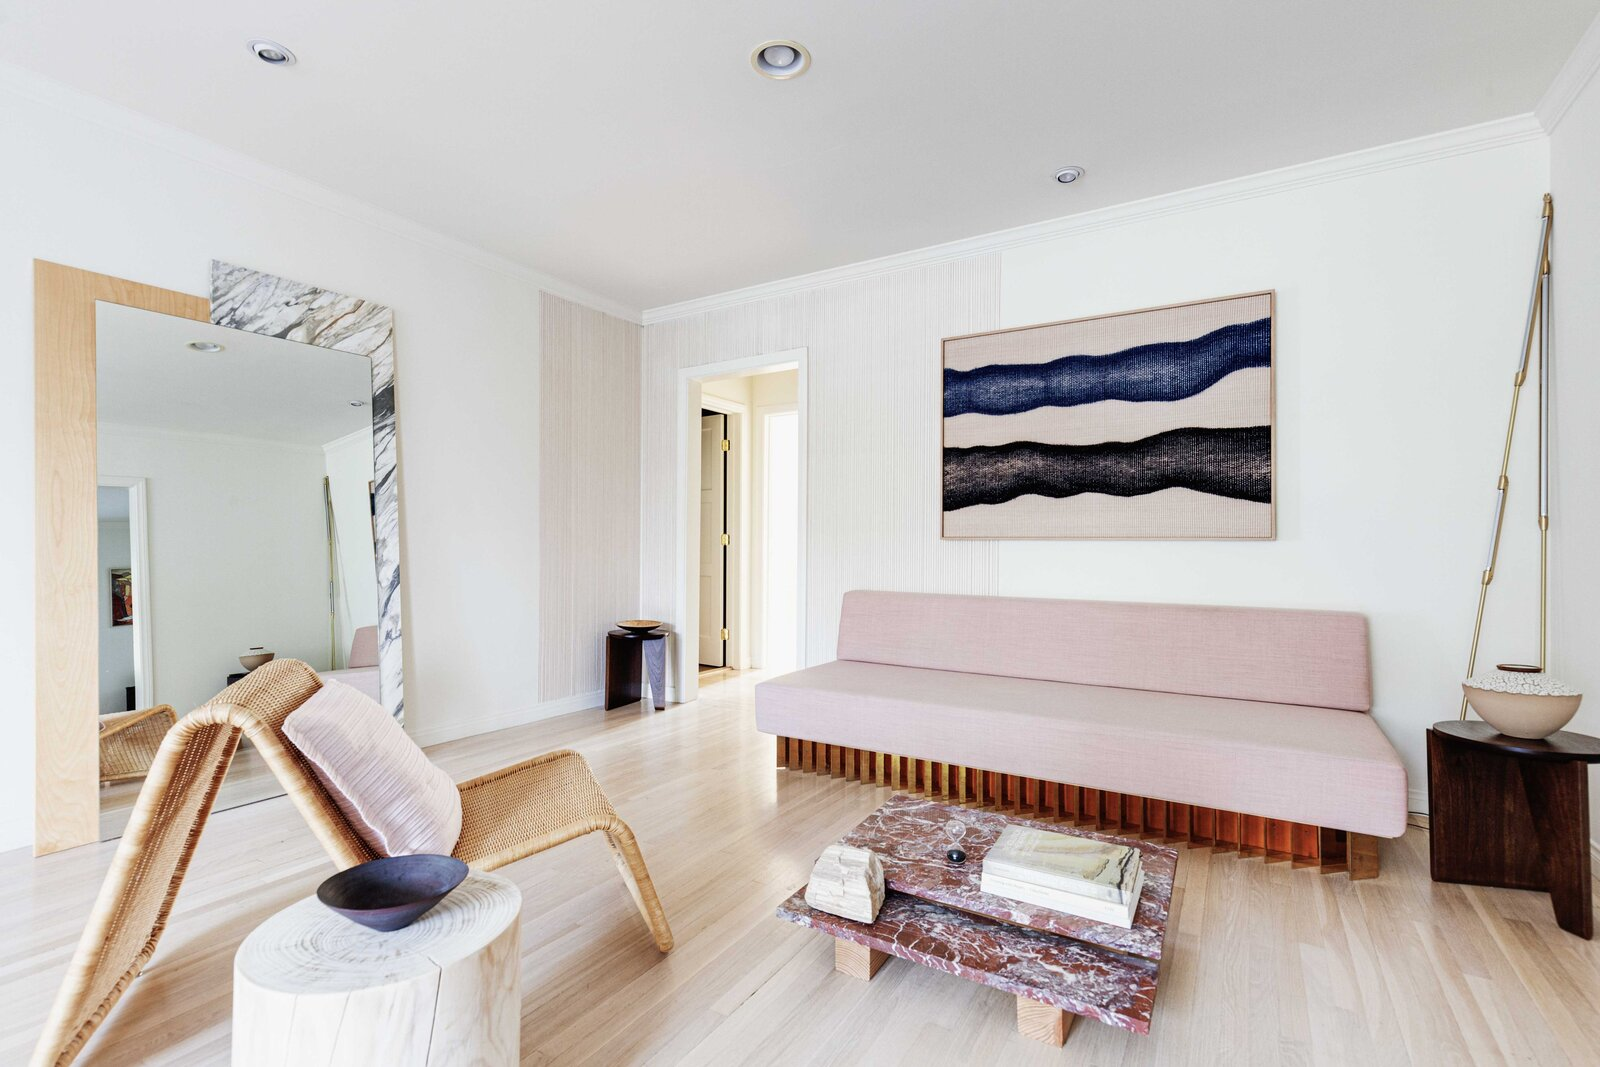 A spacious living area anchors the center of the home; a hallway leads to the bedrooms and bathroom.  Photo 3 of 16 in Listed at $950K, This Clean-Lined Cottage in Los Angeles Is a Fresh Take on City Living